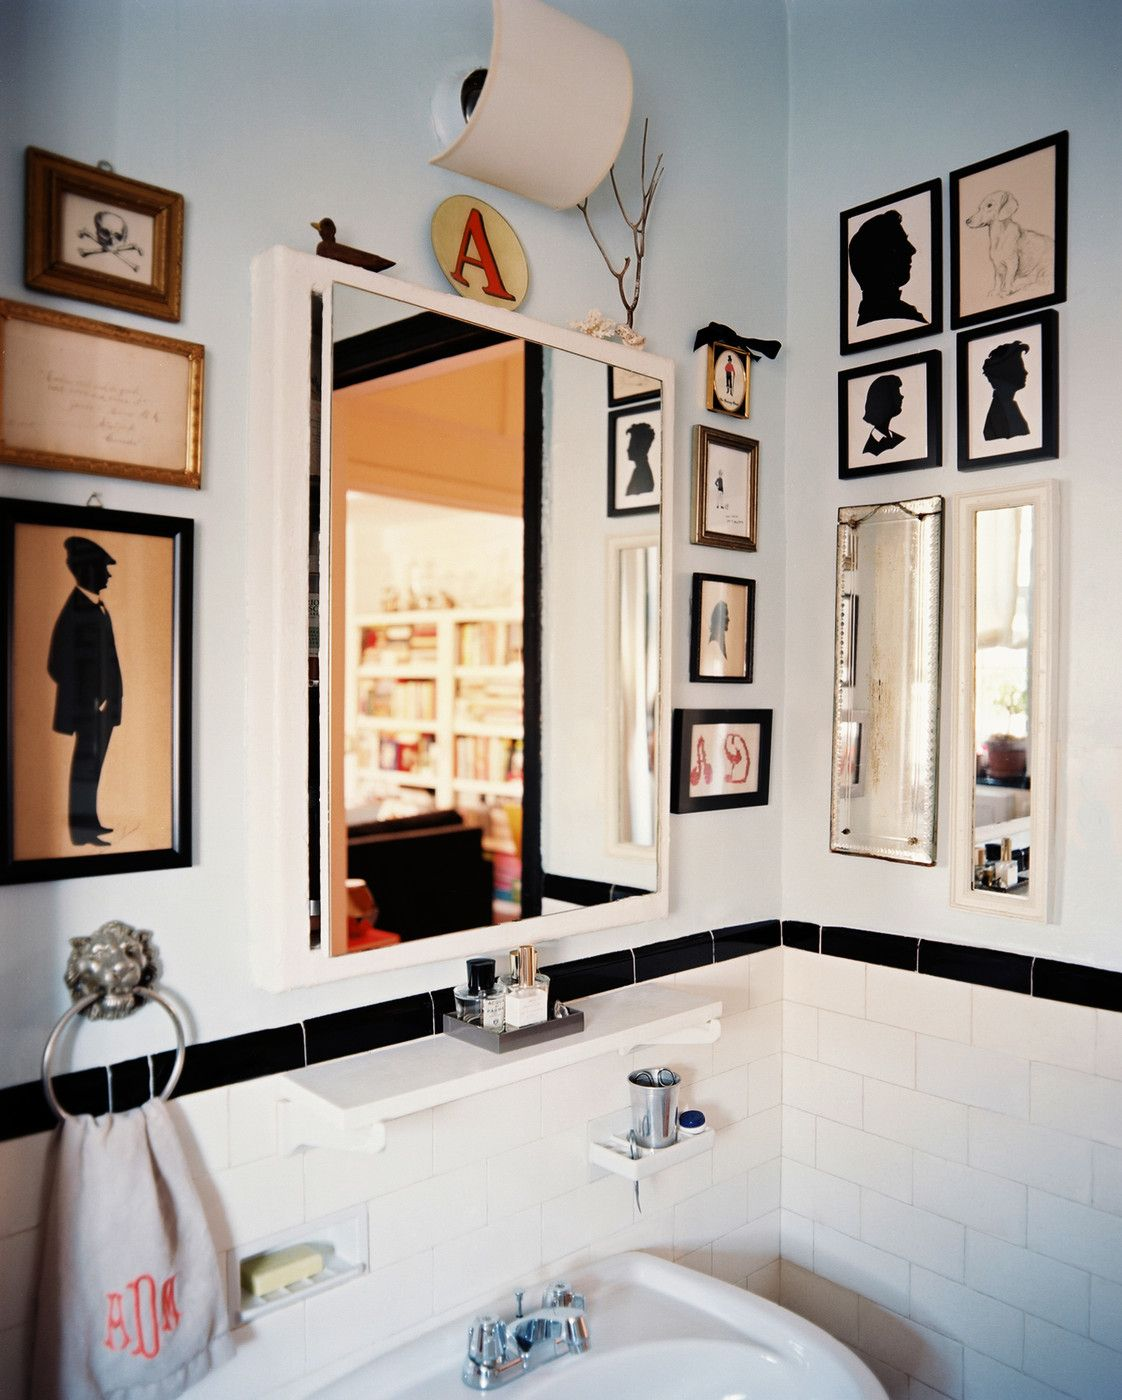 Deckenfarbe für zuhause black and white all over  bathroom  pinterest  badezimmer bad